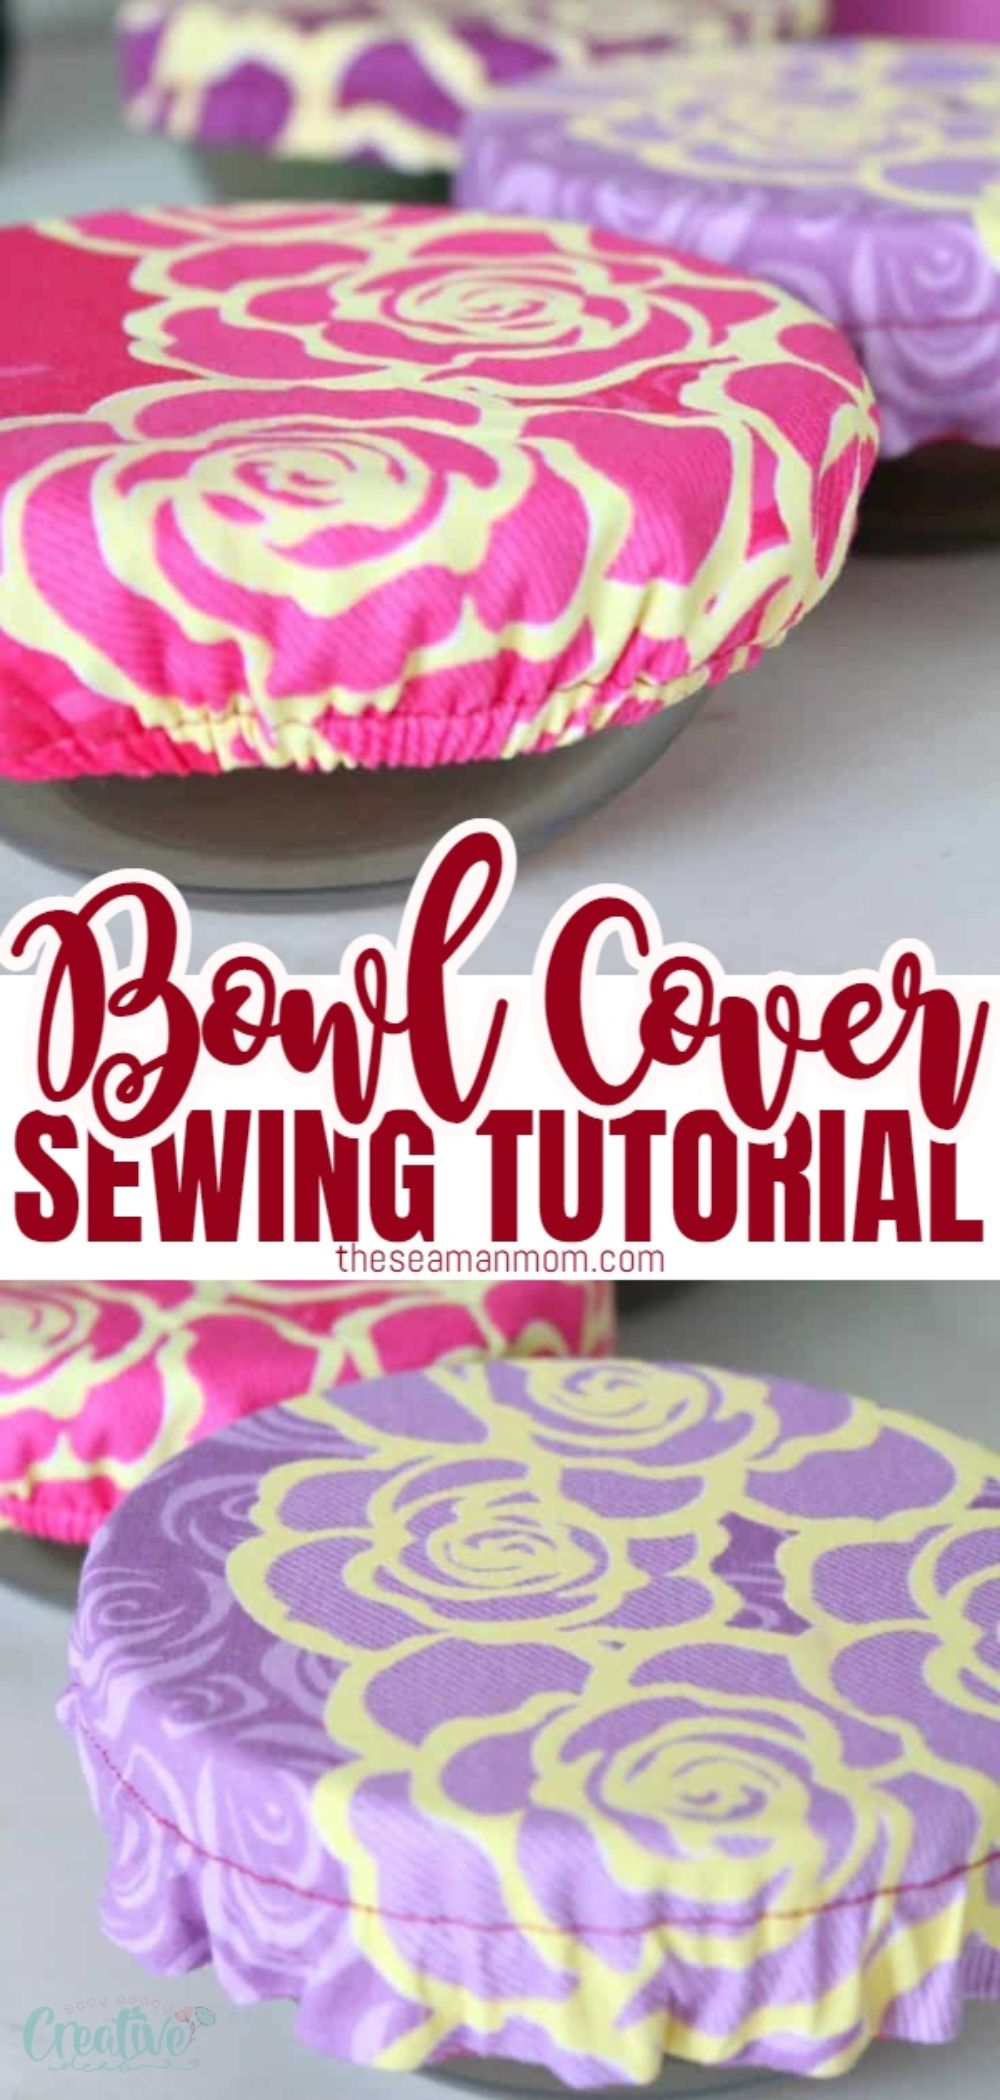 Create personalized fabric bowl covers and tote your side dishes to potlucks and barbecues in style! Make your own customized DIY bowl covers with this easy and quick sewing tutorial! via @petroneagu